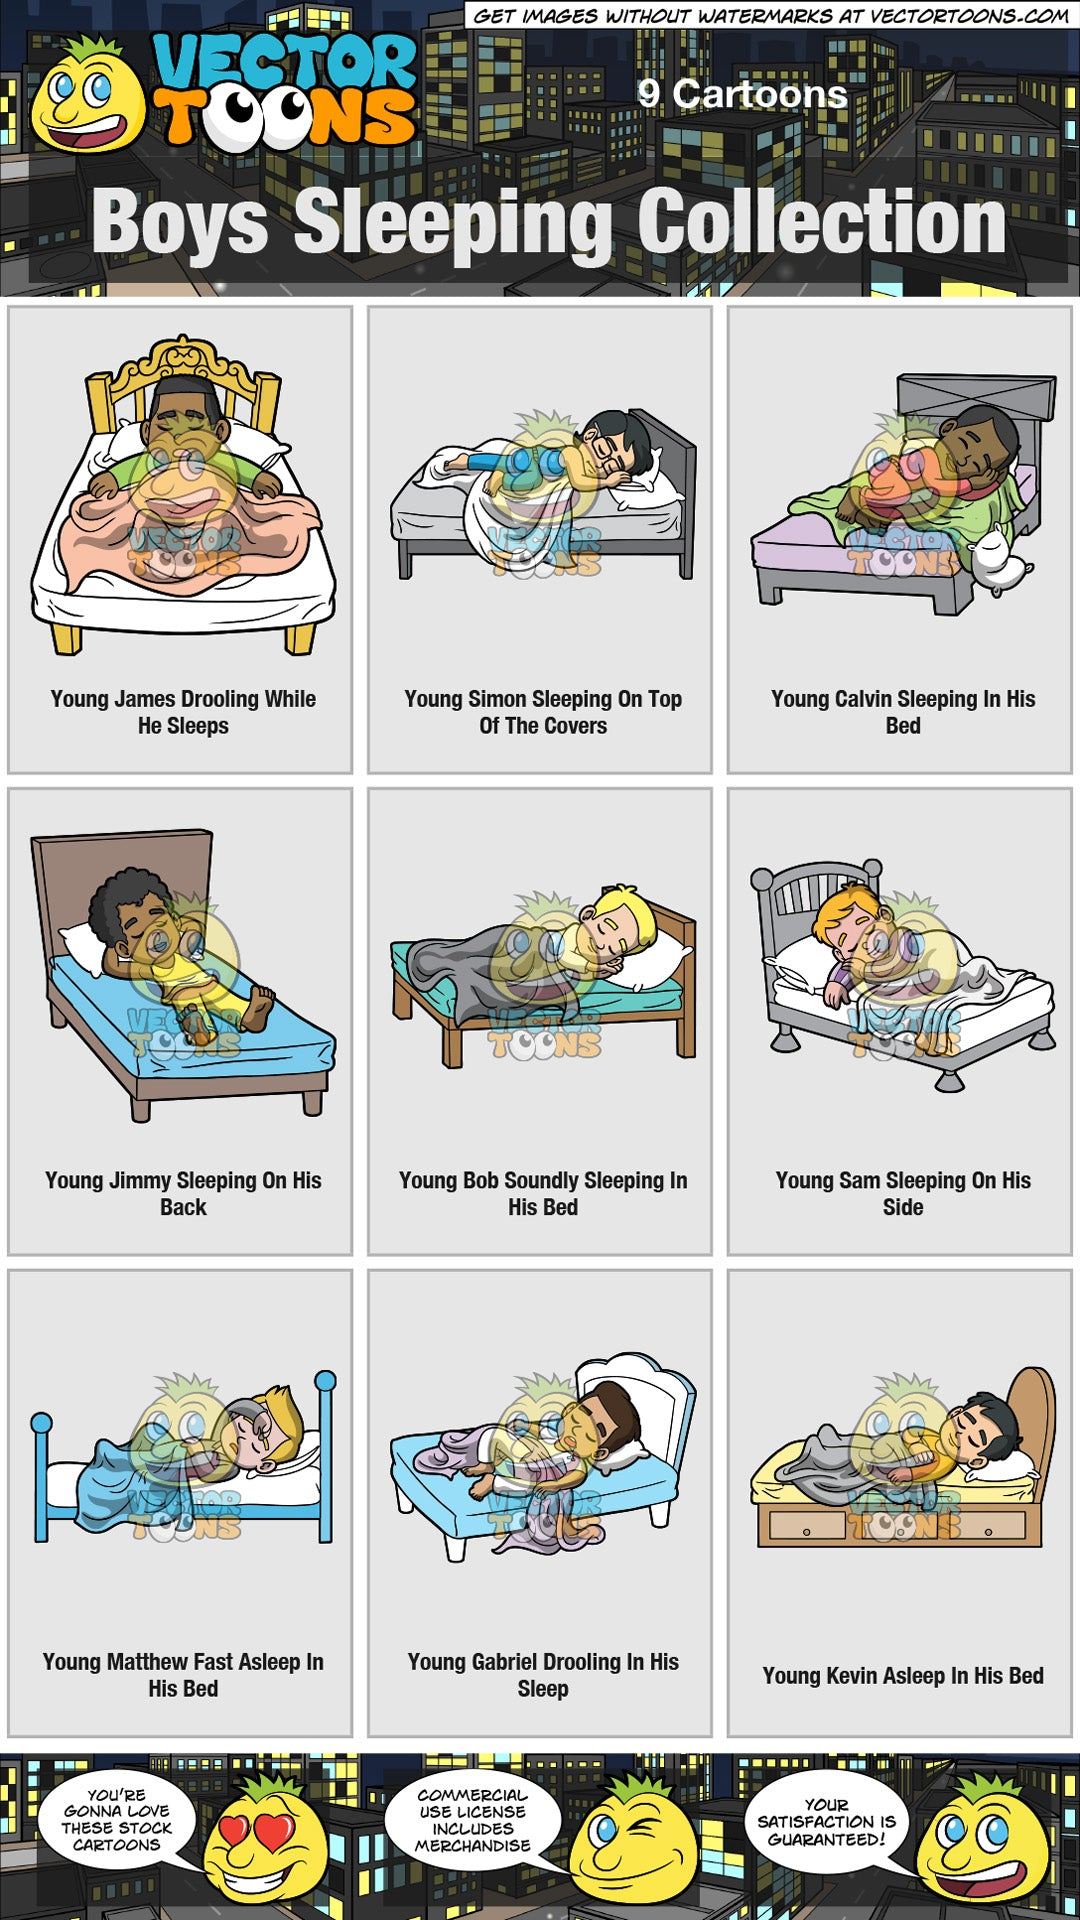 Boys Sleeping Collection